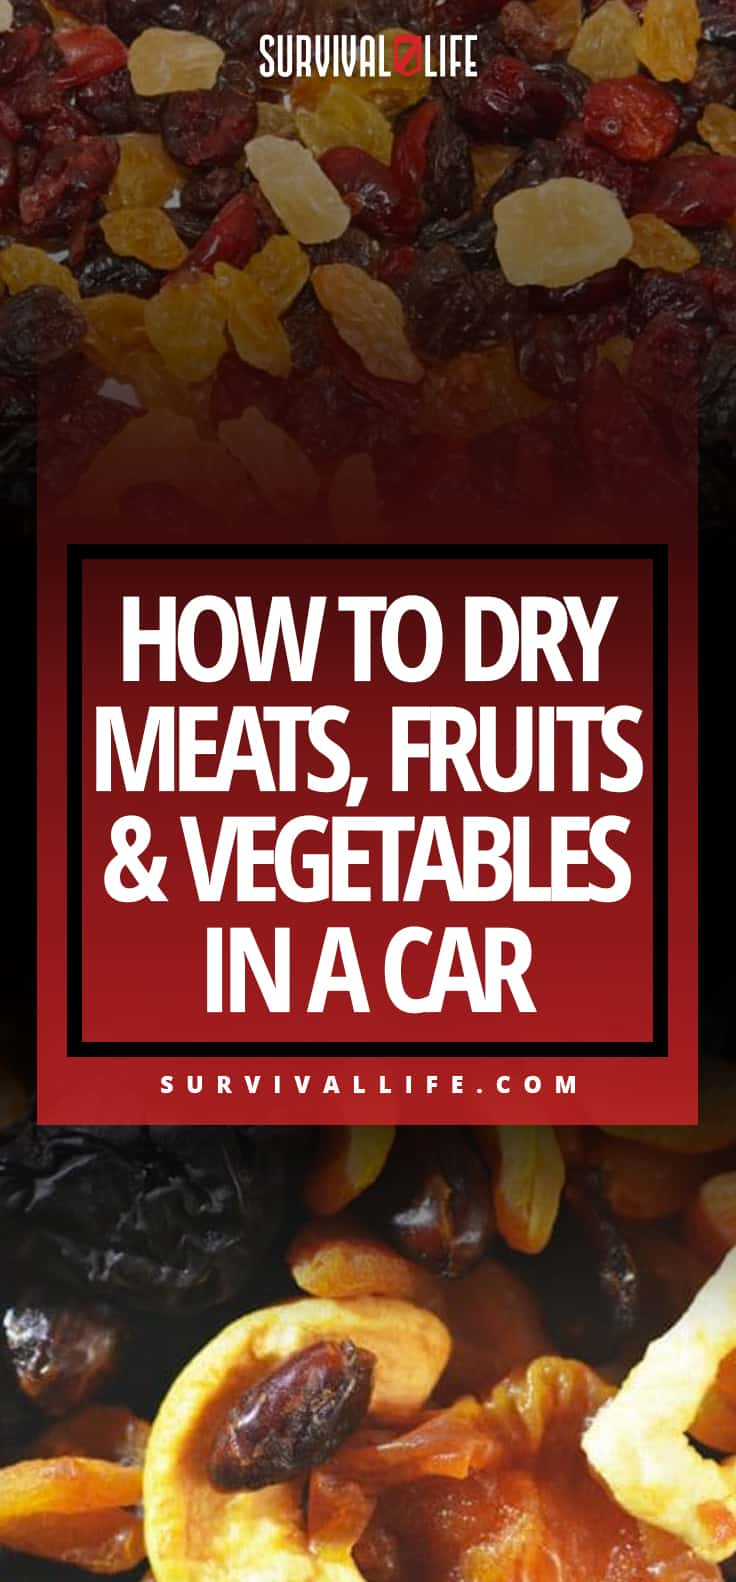 How To Dry Meats, Fruits & Vegetables In A Car